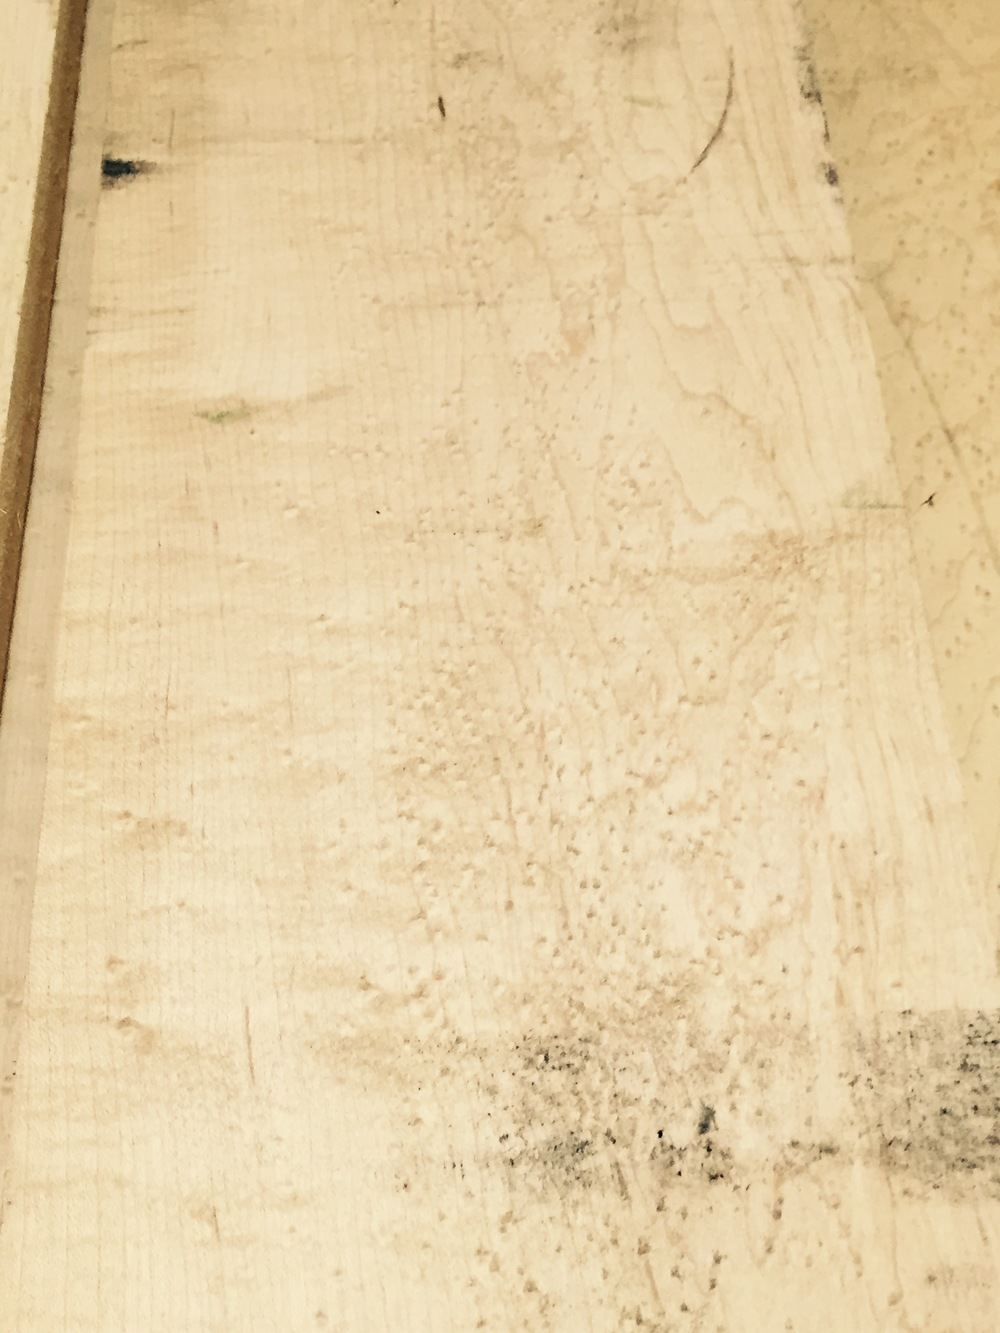 4/4 Birdseye Maple $8.25 / BF